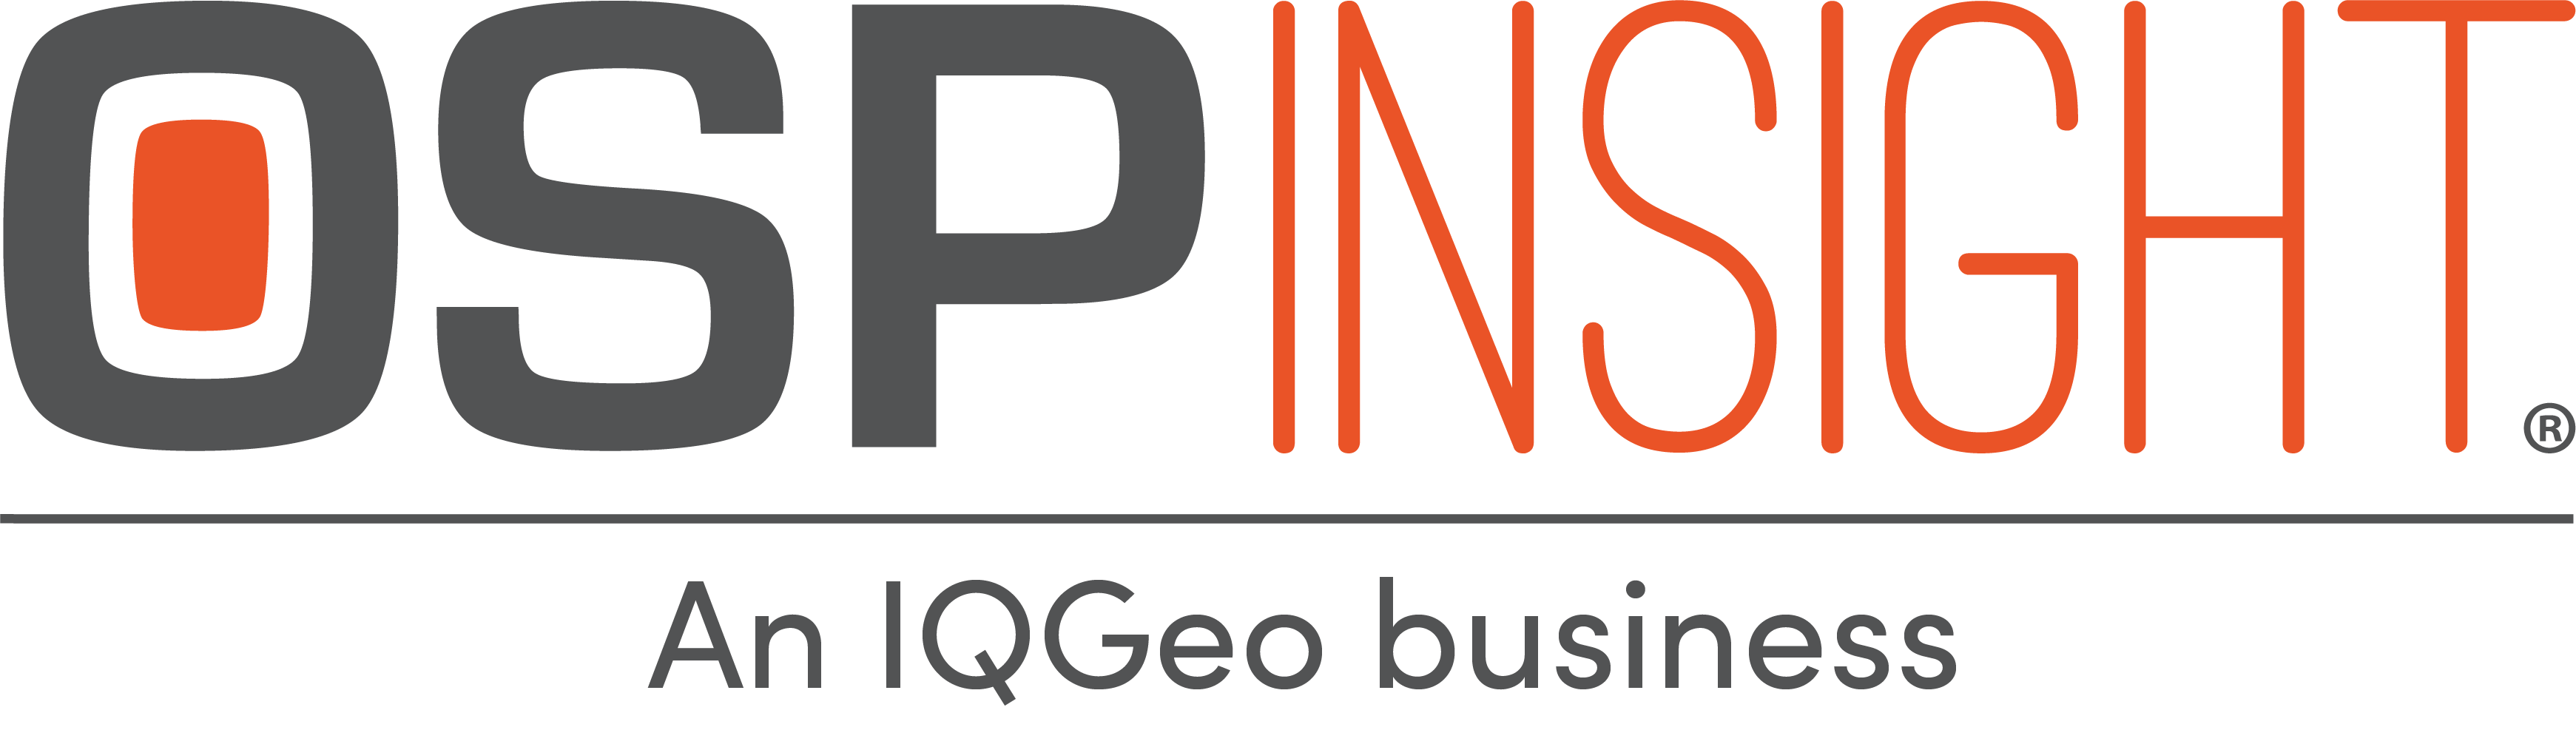 OSPInsight - An IQGeo Business (Transparent)